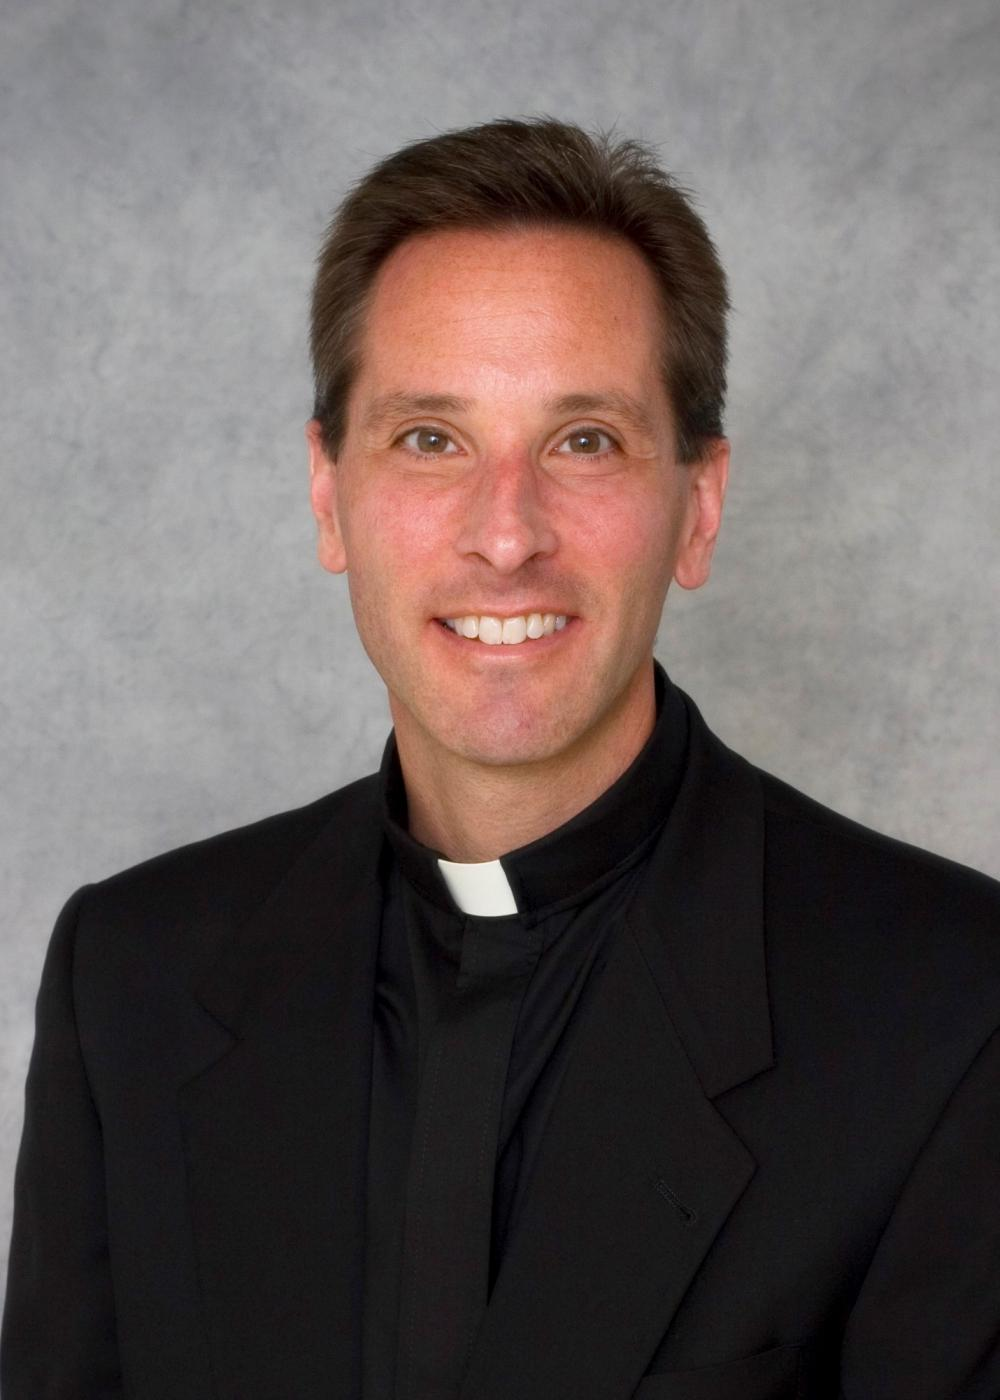 Deacon Victor Puscas was recently named as the new director of formation in the Diaconate Office.